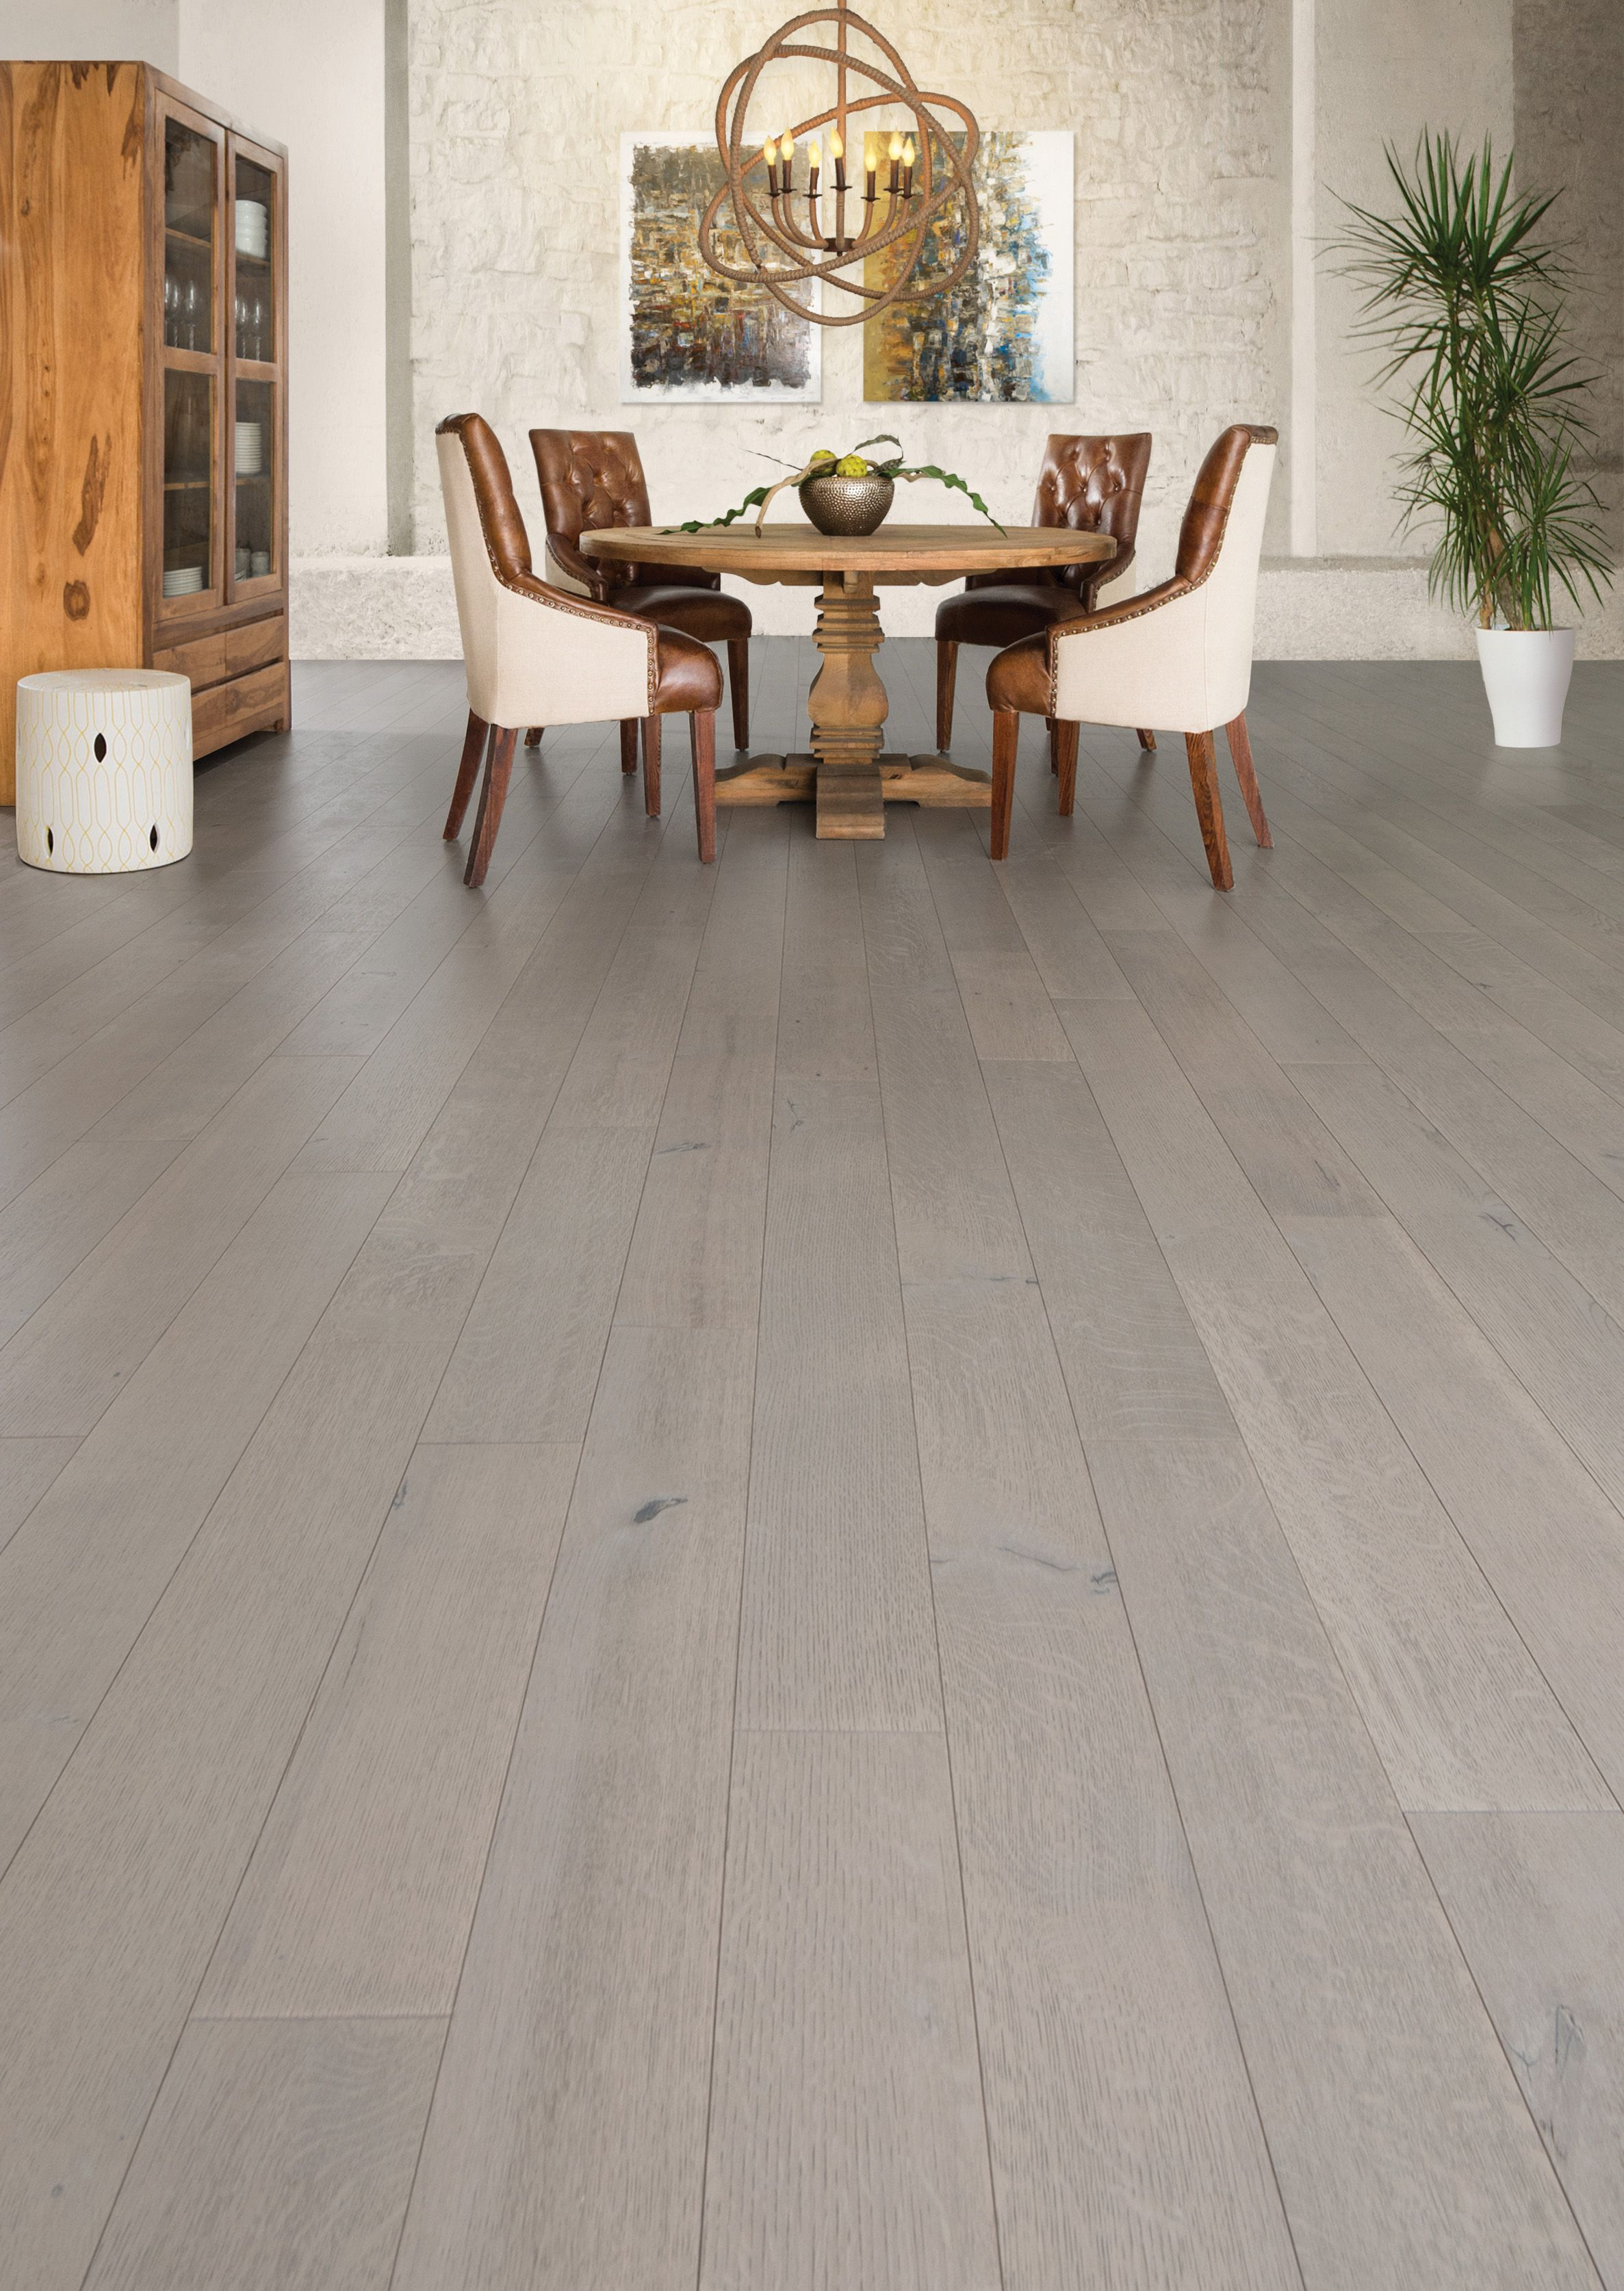 Mirage Floors The World S Finest And Best Hardwood White Oak R Q Treasure Character Whiteoak Hardwoodflooring